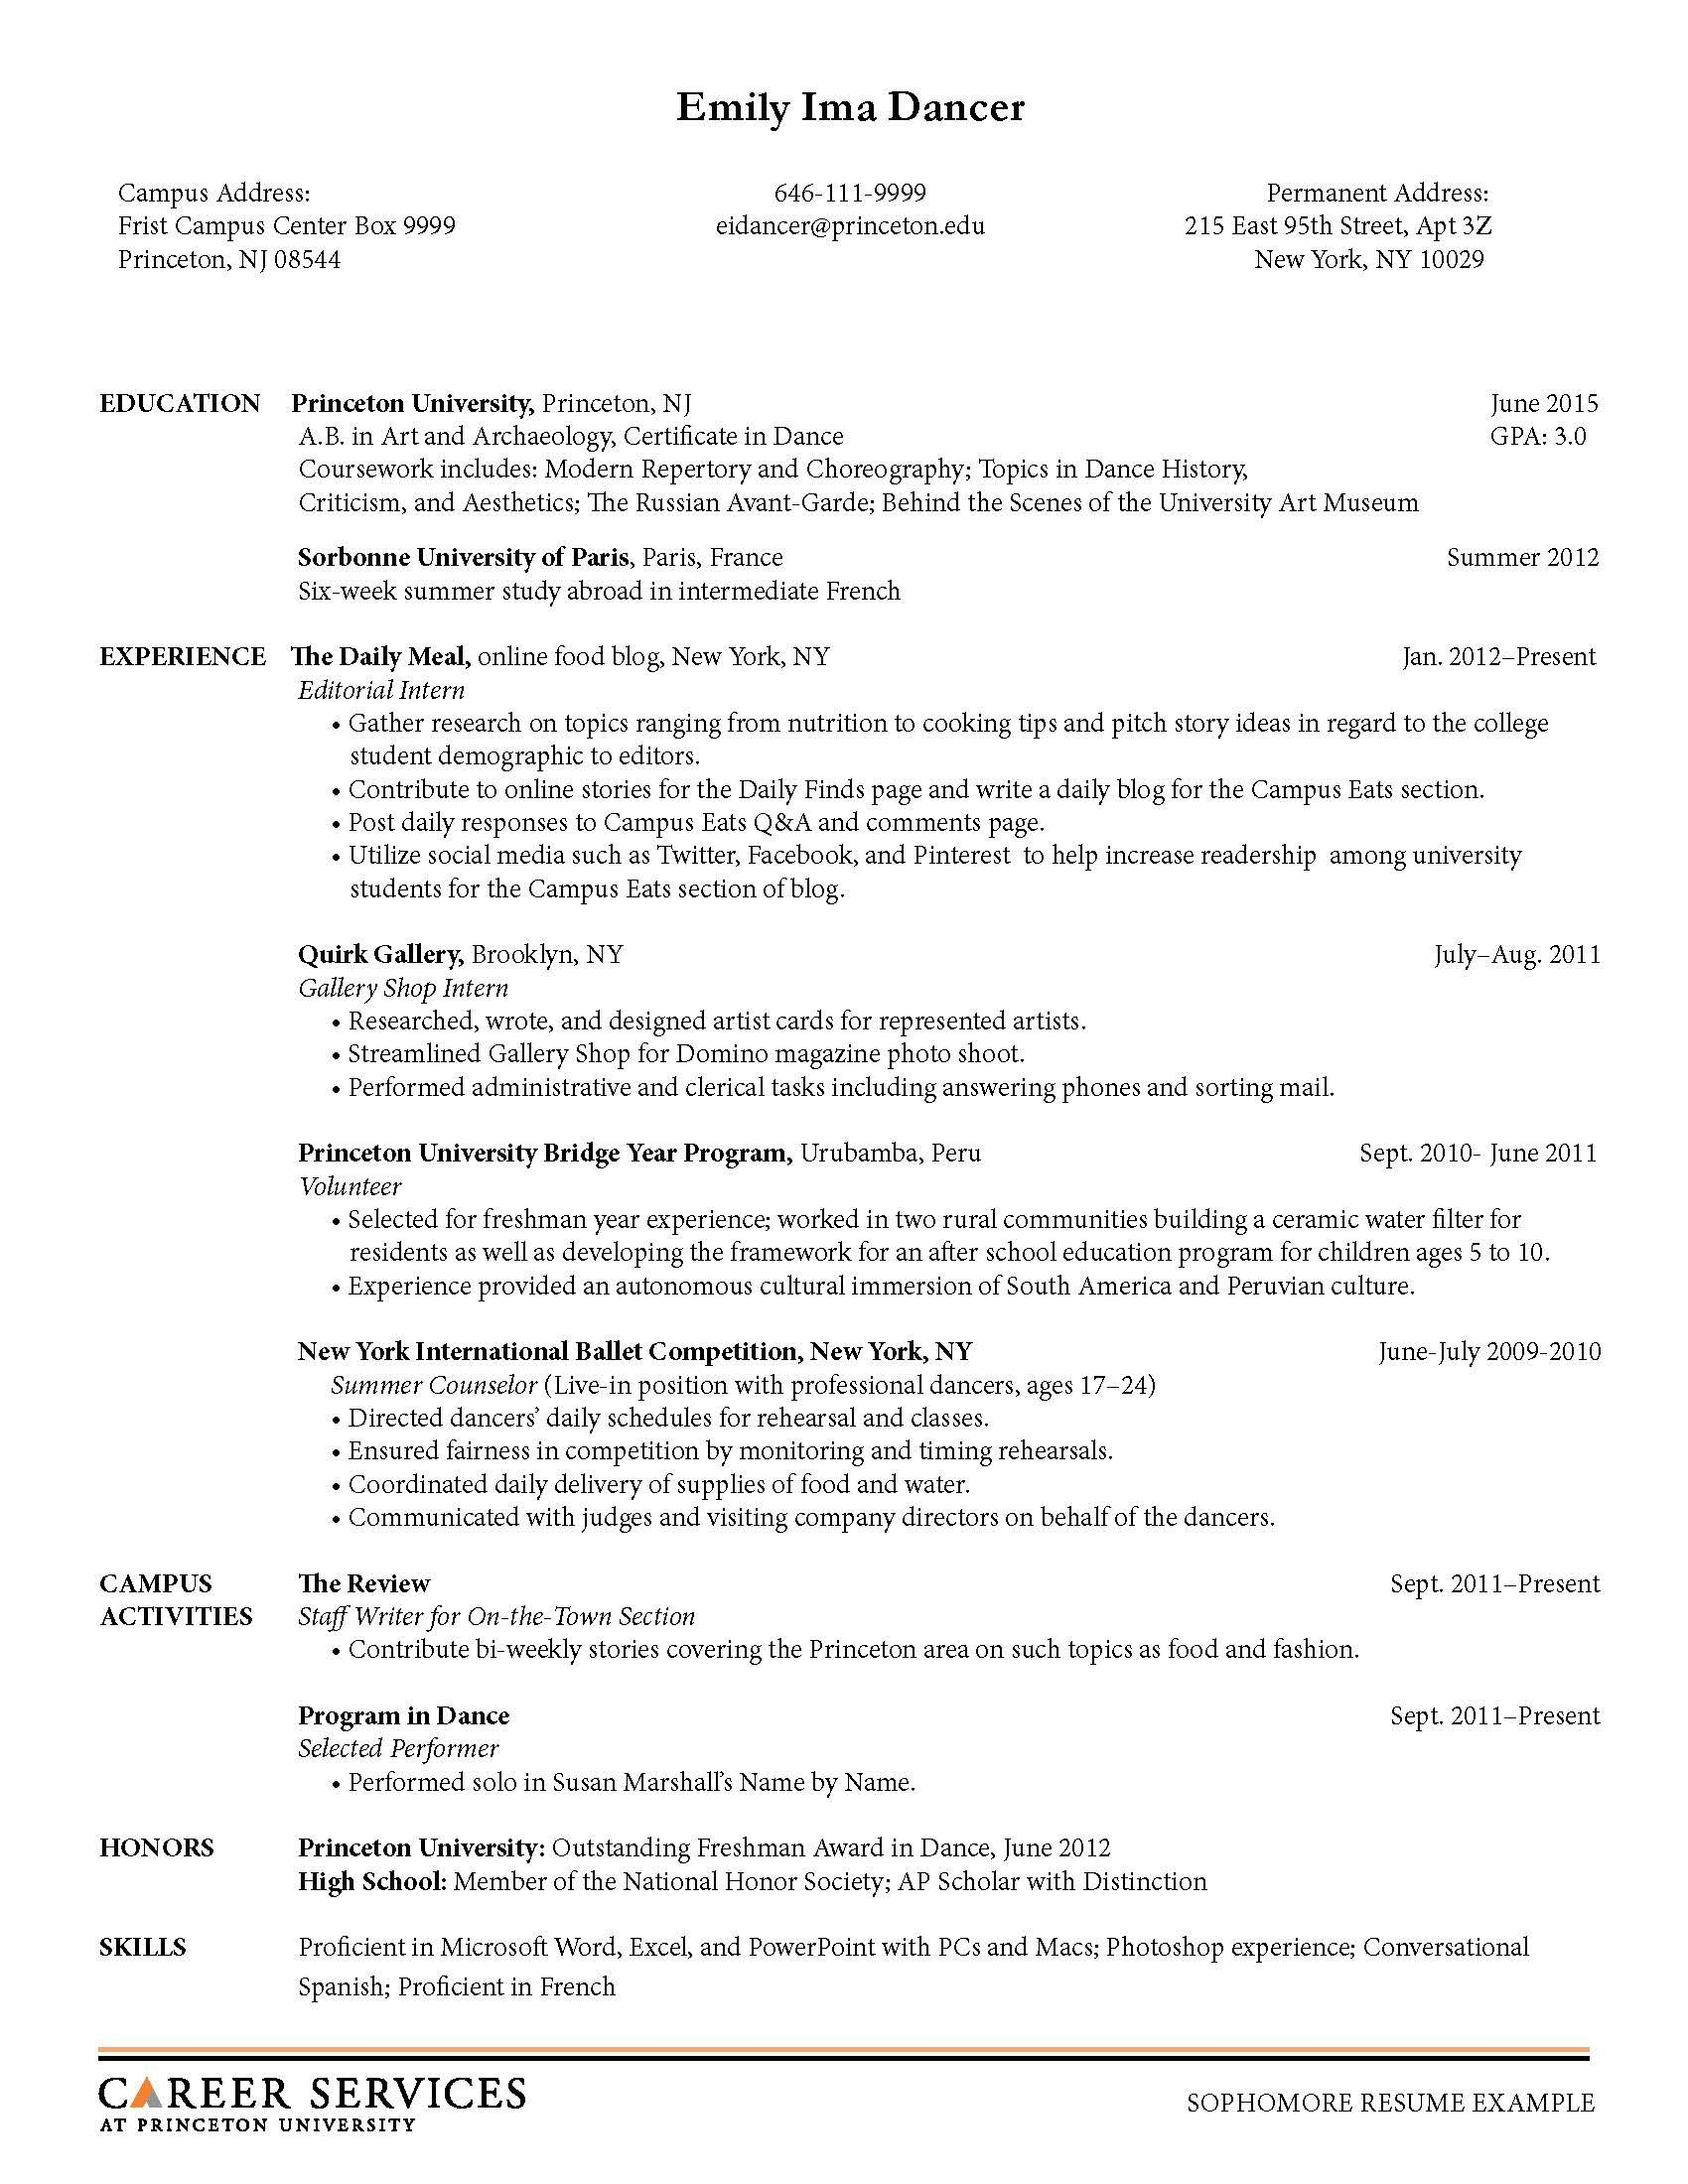 Opposenewapstandardsus  Mesmerizing Sample Resume Resume And Career On Pinterest With Fascinating Education Part Of Resume Besides Resume In Latex Furthermore Free Job Resume With Delightful Margins On A Resume Also Resume Cover Letter Builder In Addition Work In Texas Resume And Legal Resume Examples As Well As Change Management Resume Additionally Upload Resume For Jobs From Pinterestcom With Opposenewapstandardsus  Fascinating Sample Resume Resume And Career On Pinterest With Delightful Education Part Of Resume Besides Resume In Latex Furthermore Free Job Resume And Mesmerizing Margins On A Resume Also Resume Cover Letter Builder In Addition Work In Texas Resume From Pinterestcom